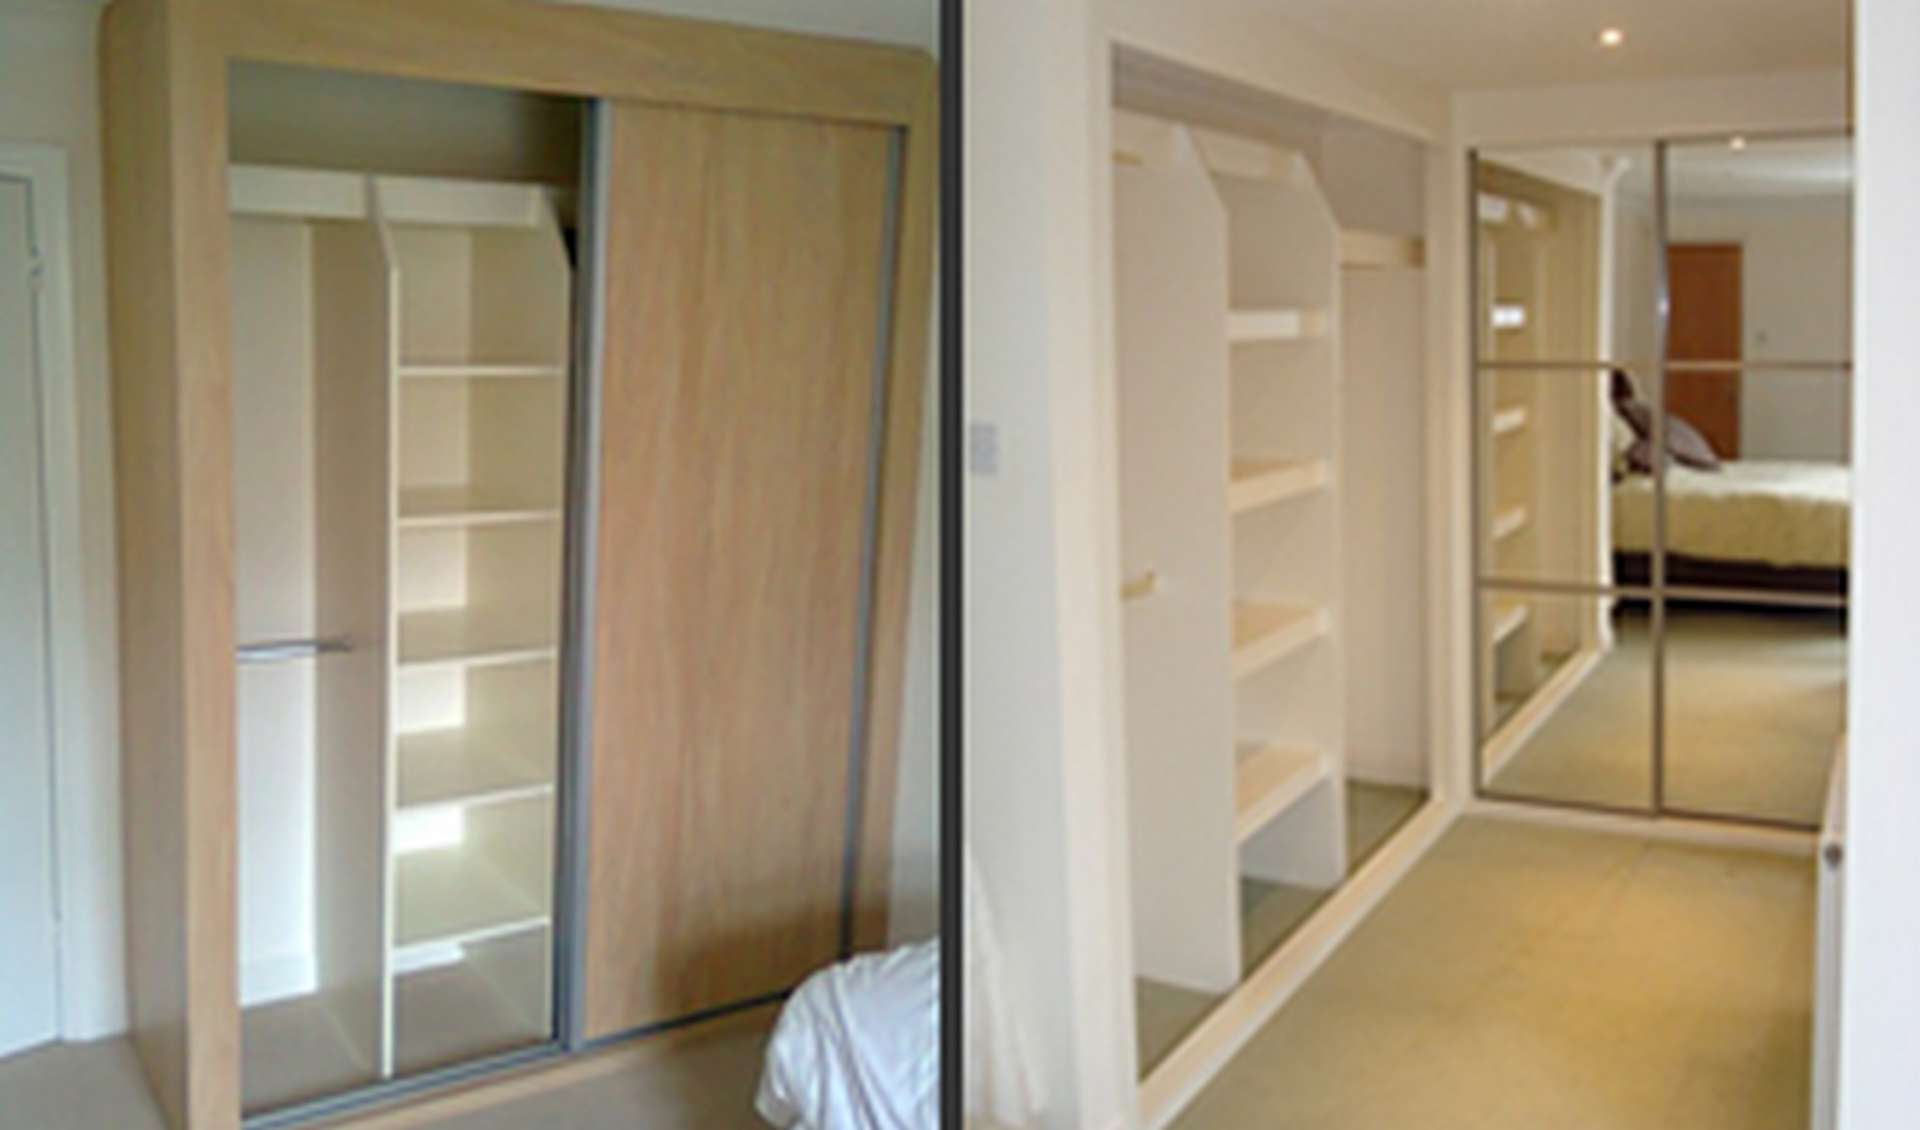 Interior Storage Options For Sliding Bedroom Wardrobes